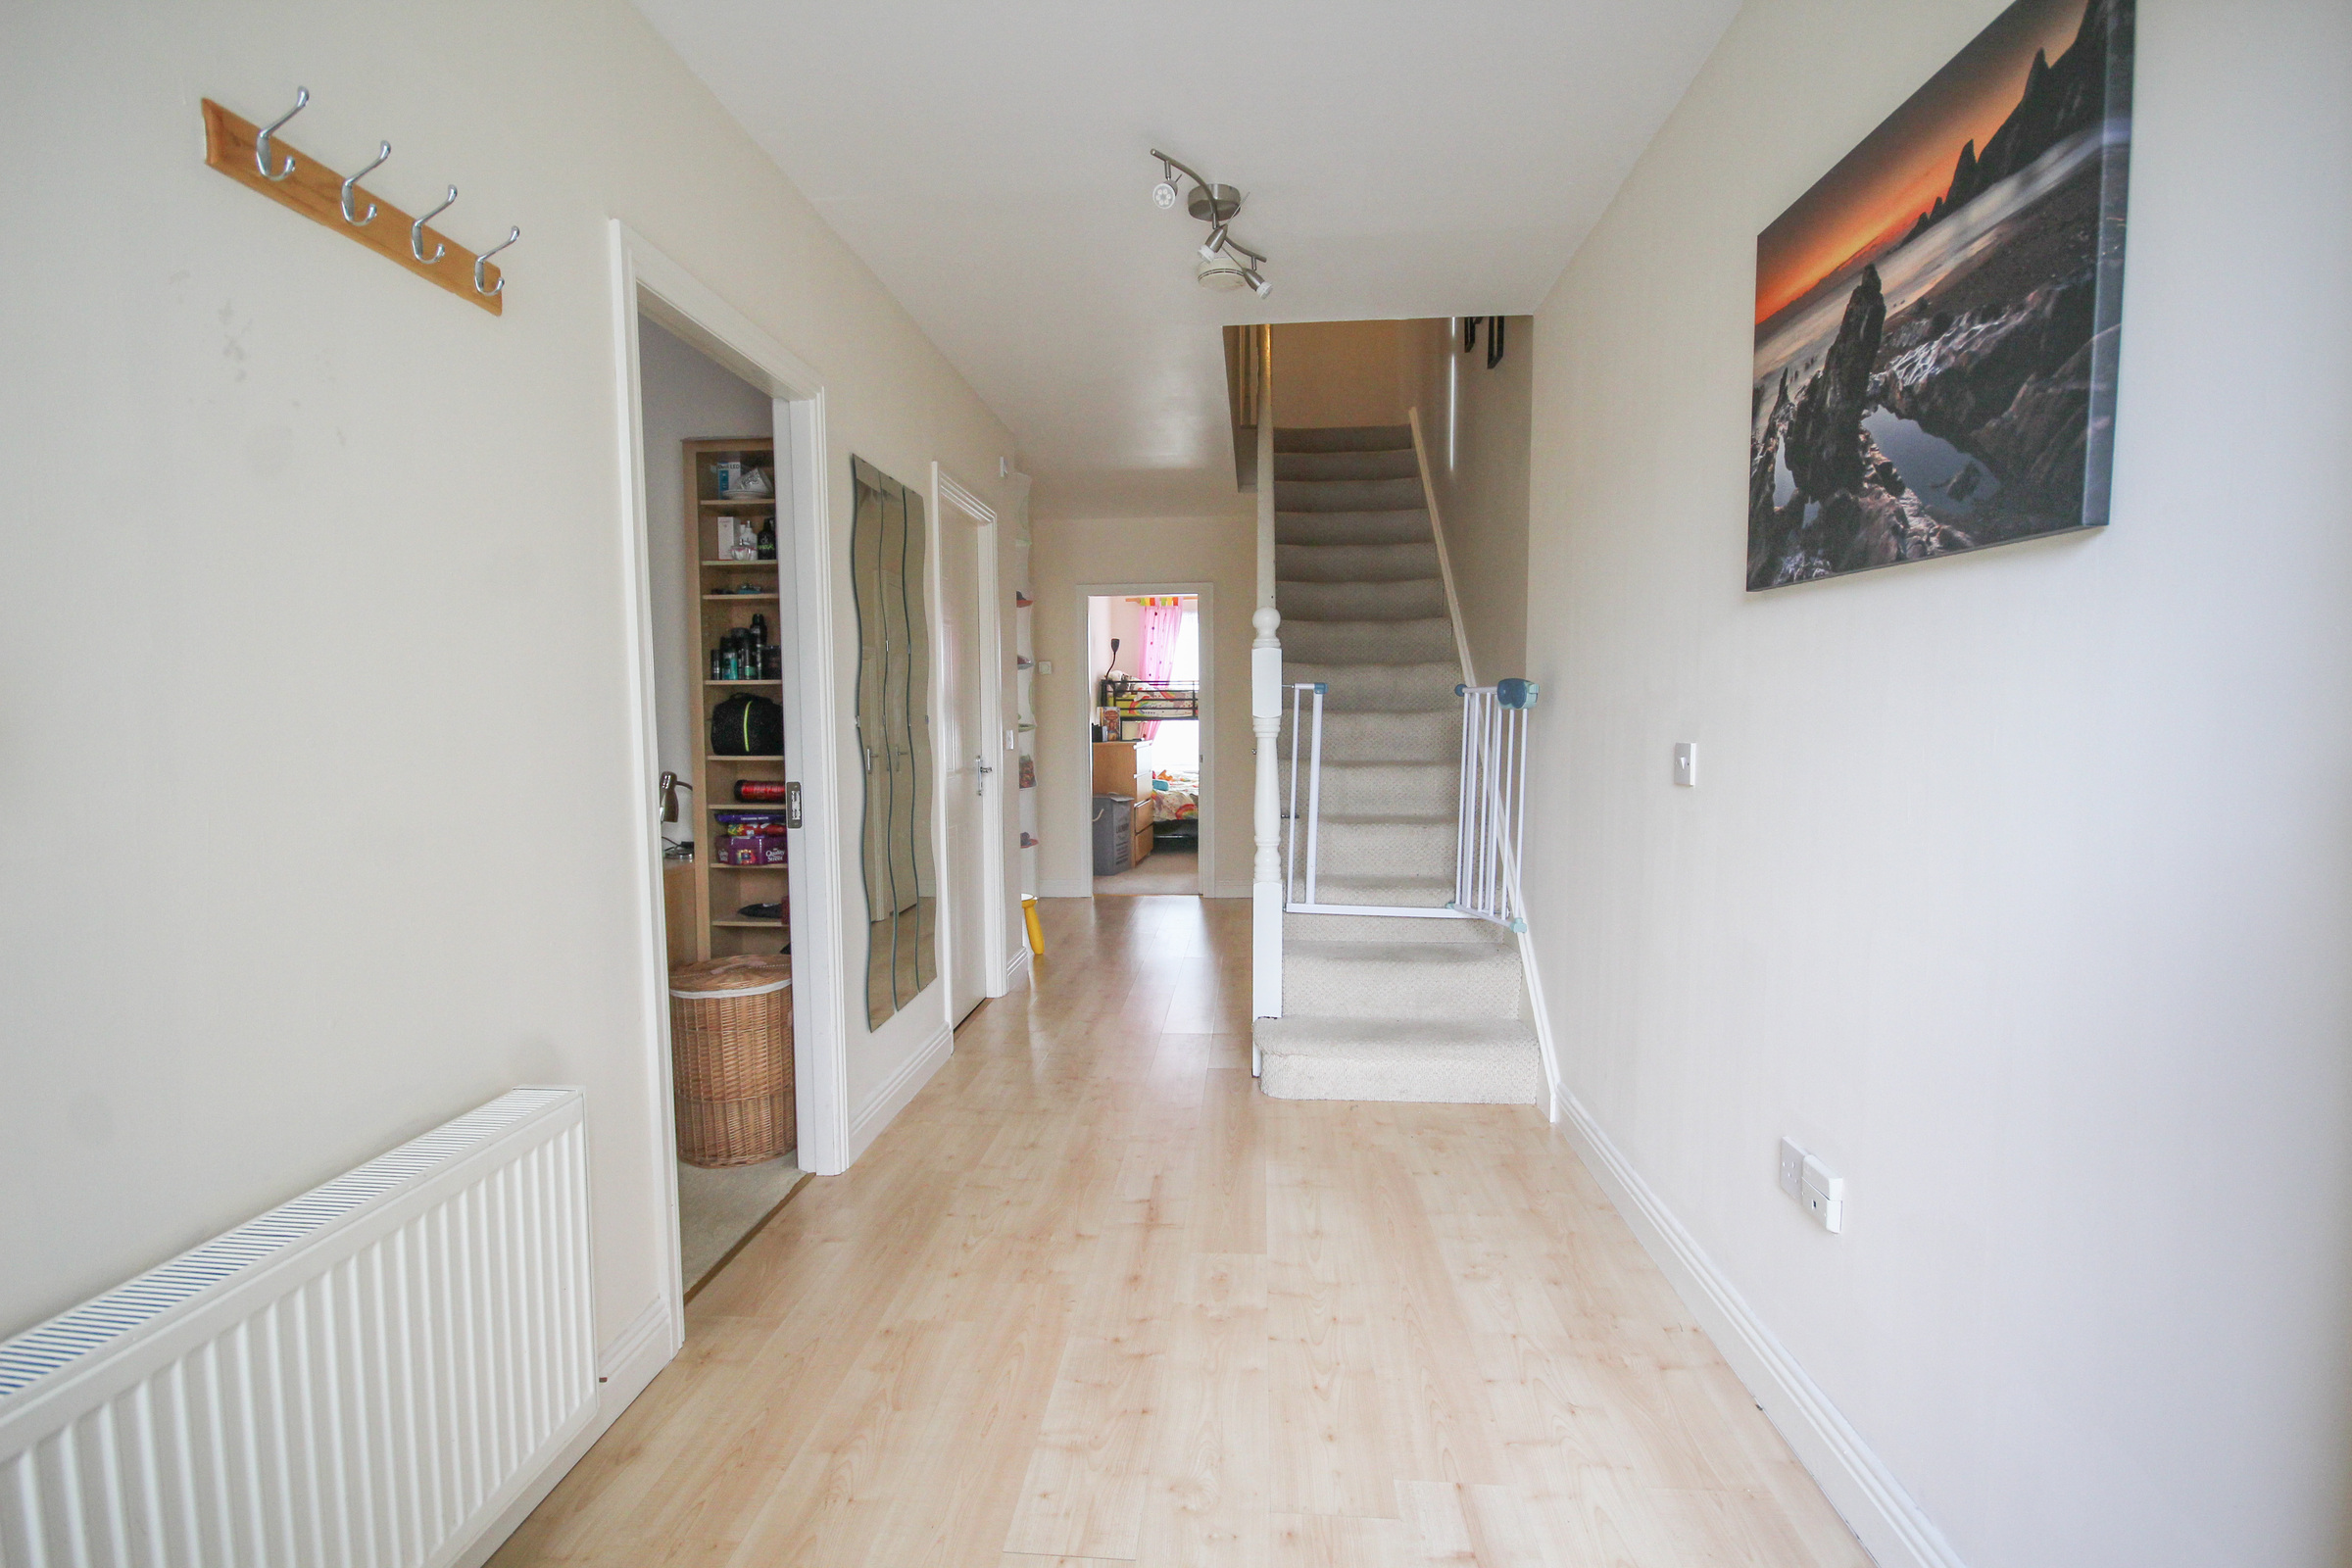 15 Woodleigh Way, Blessington, Co. Wicklow